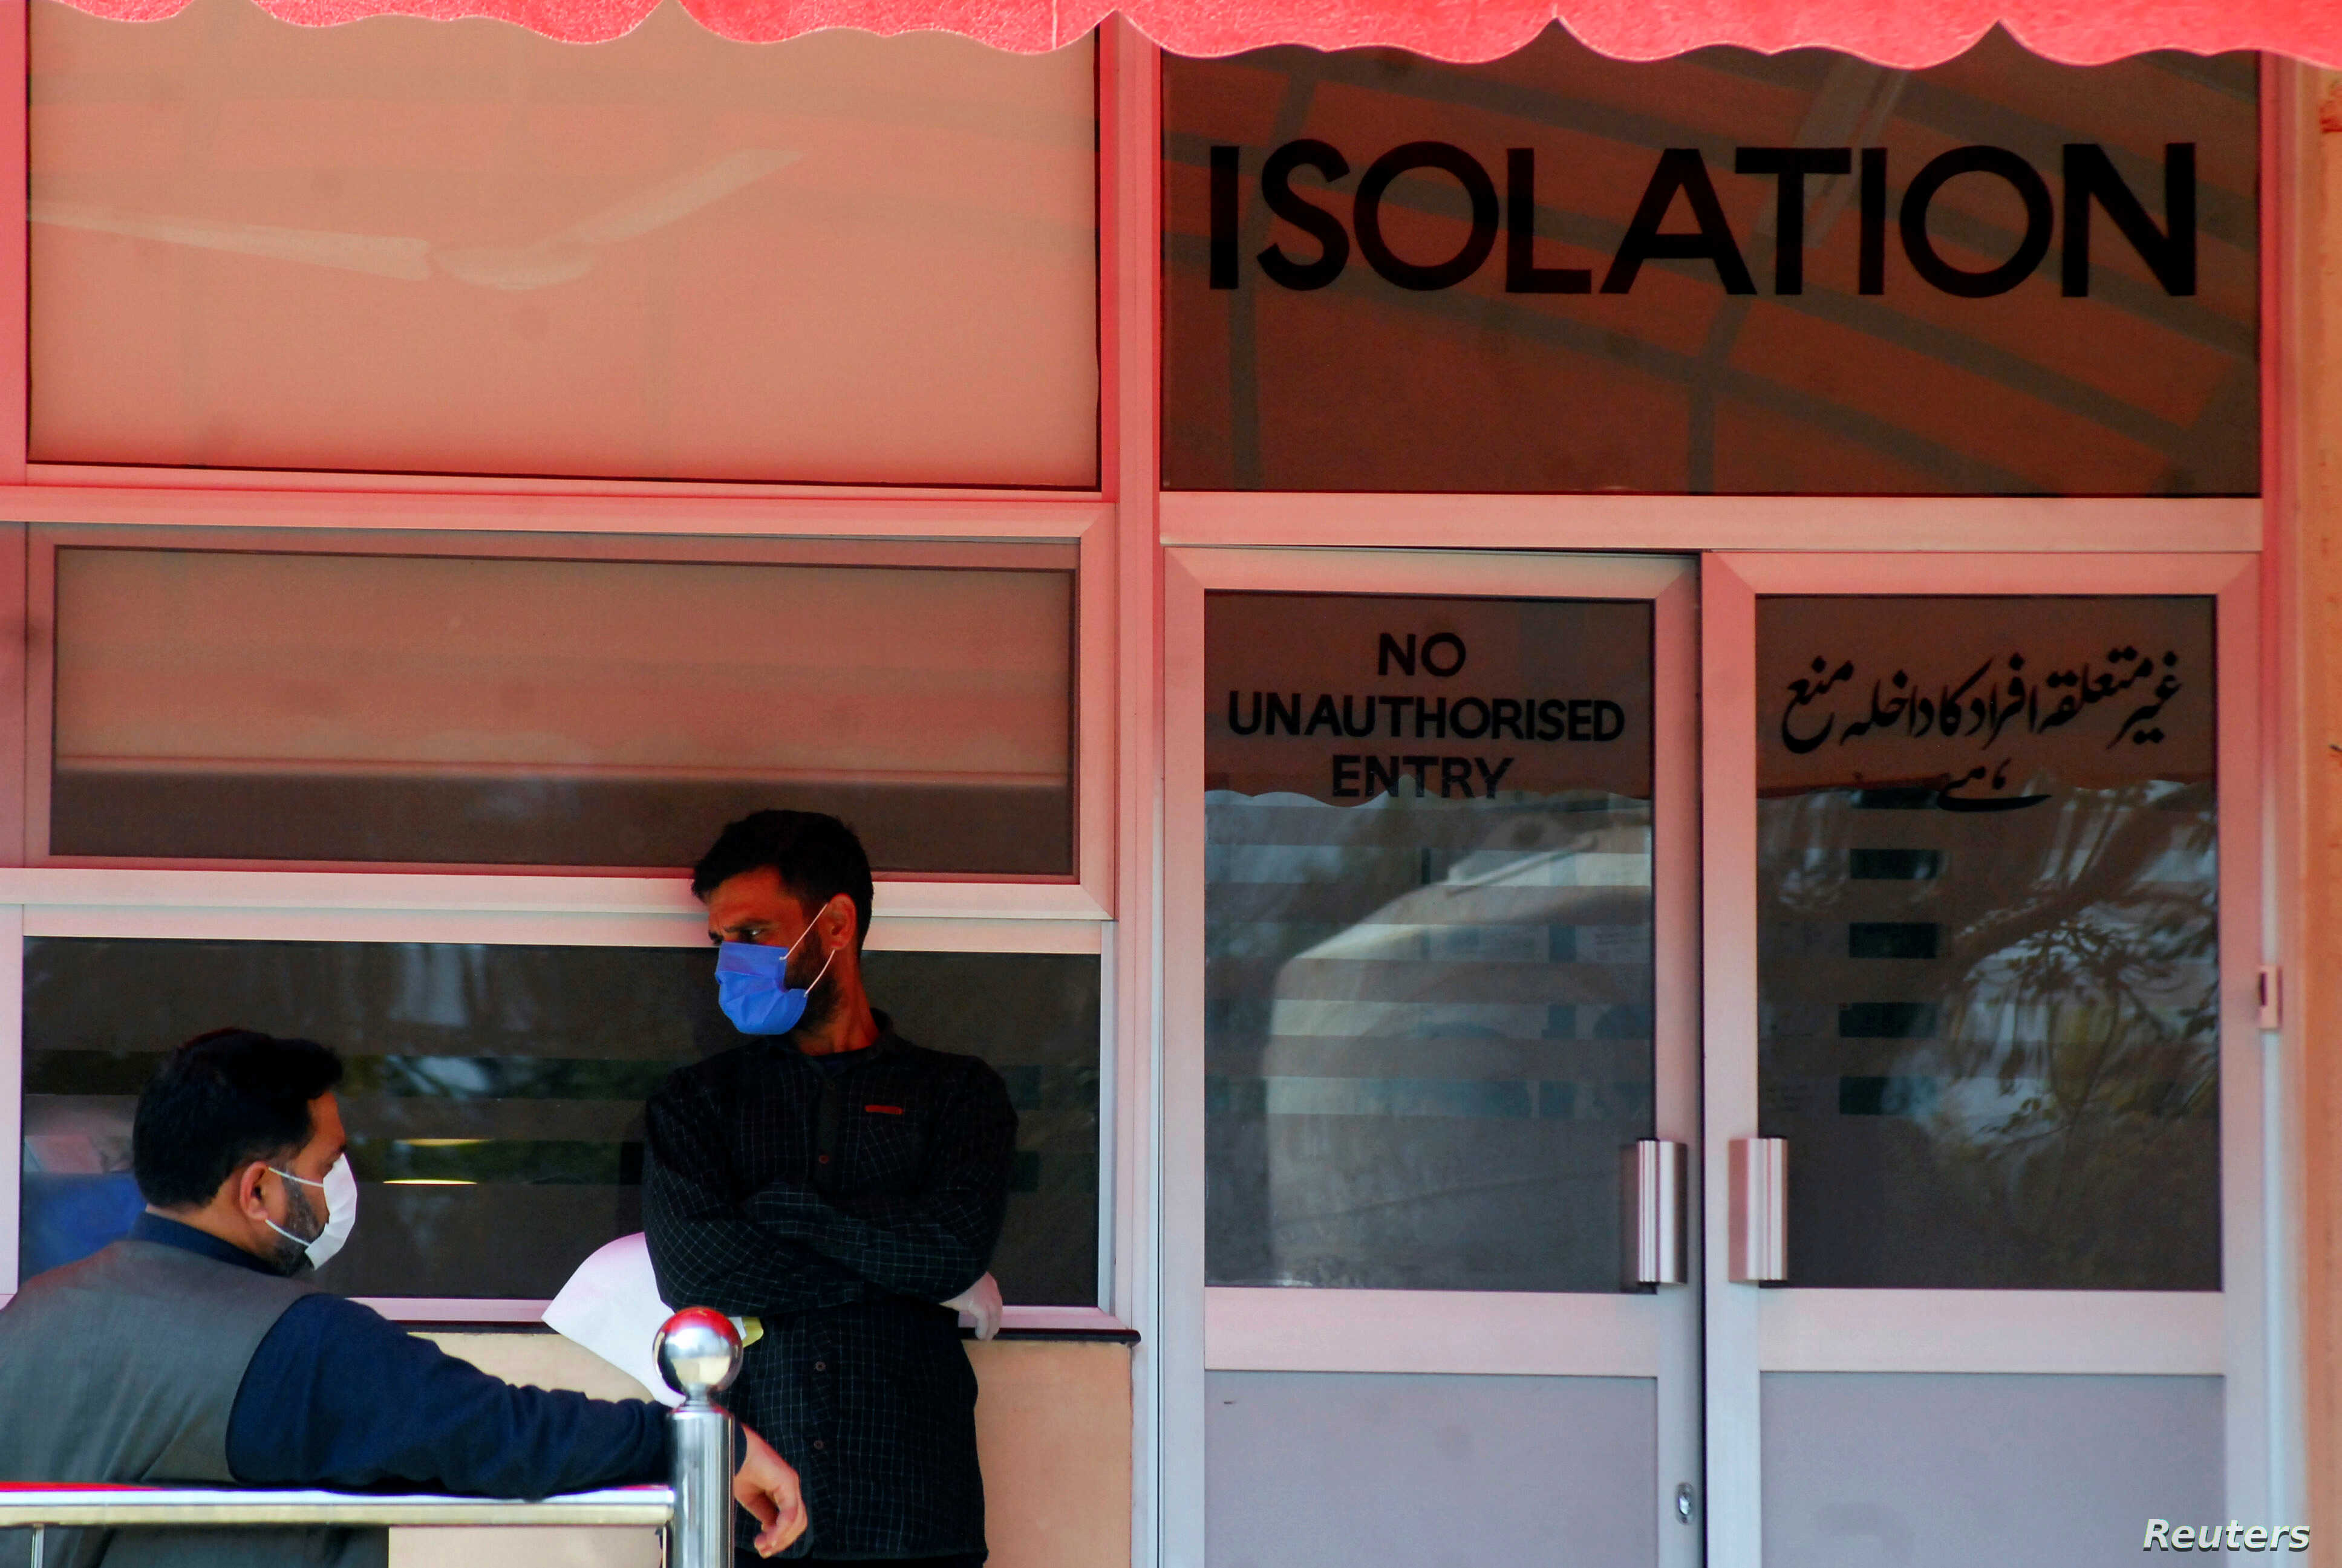 Men wear protective mask as a preventive measure against coronavirus, as they stand outside the Isolation ward at the Pakistan Institute of Medial Sciences in Islamabad. PHOTO: REUTERS